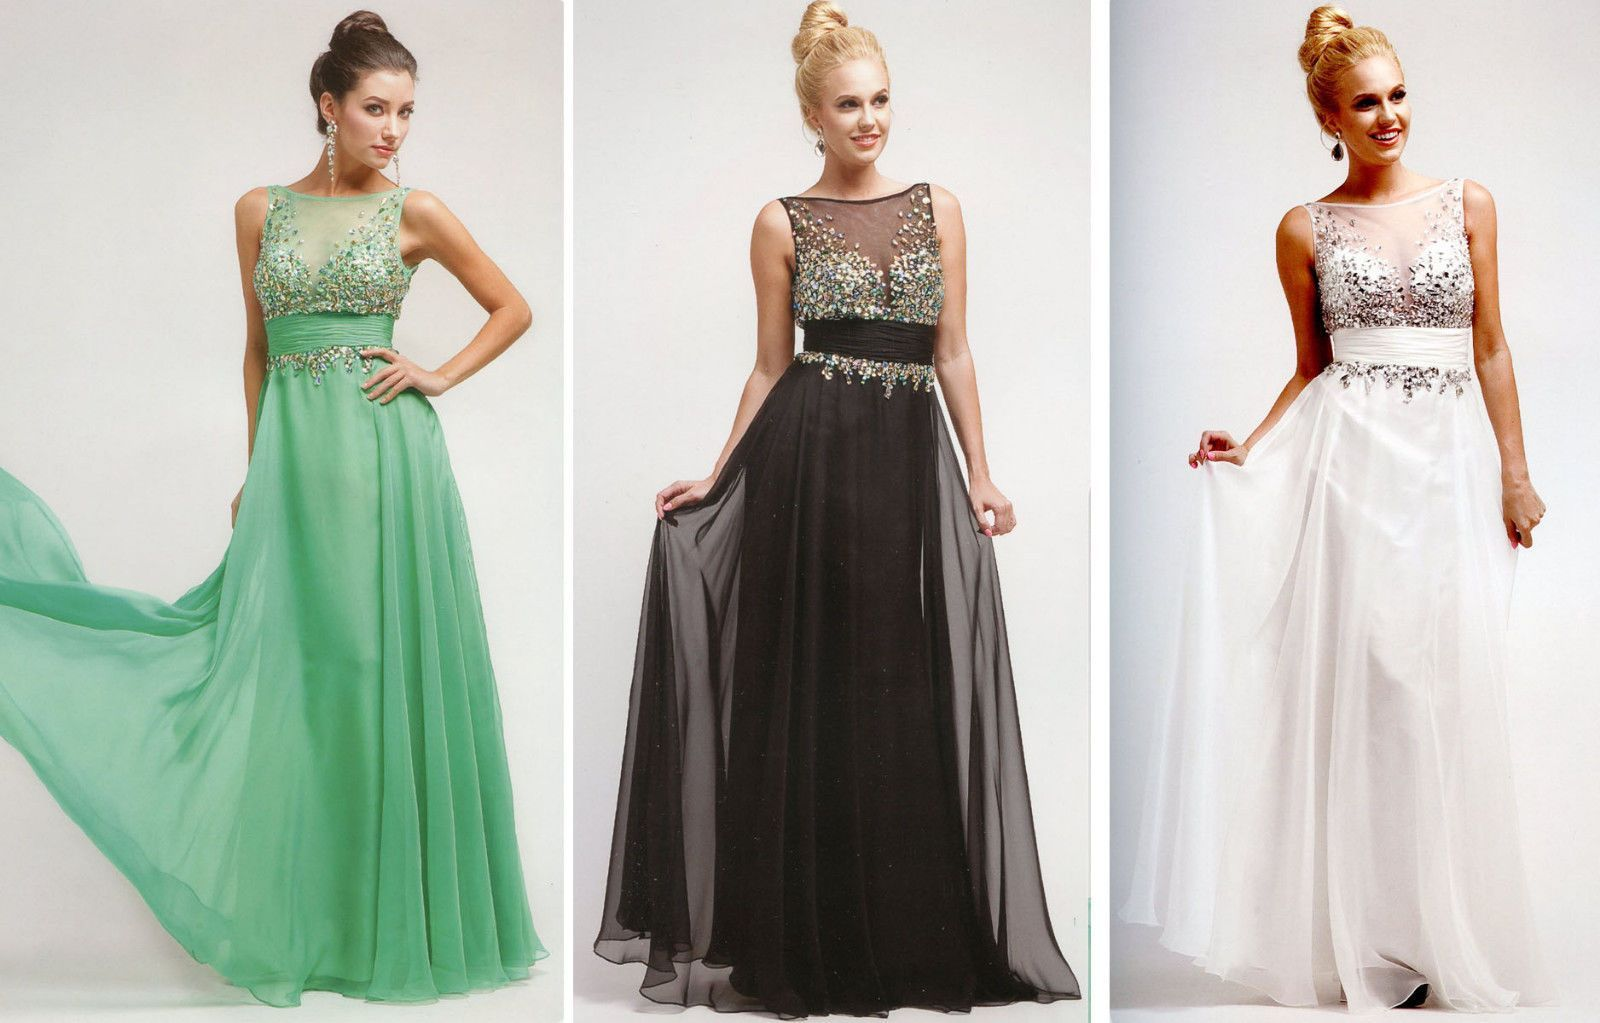 Details about 3 COLOR COCKTAIL PROM BRIDESMAIDS HOMECOMING FORMAL ...